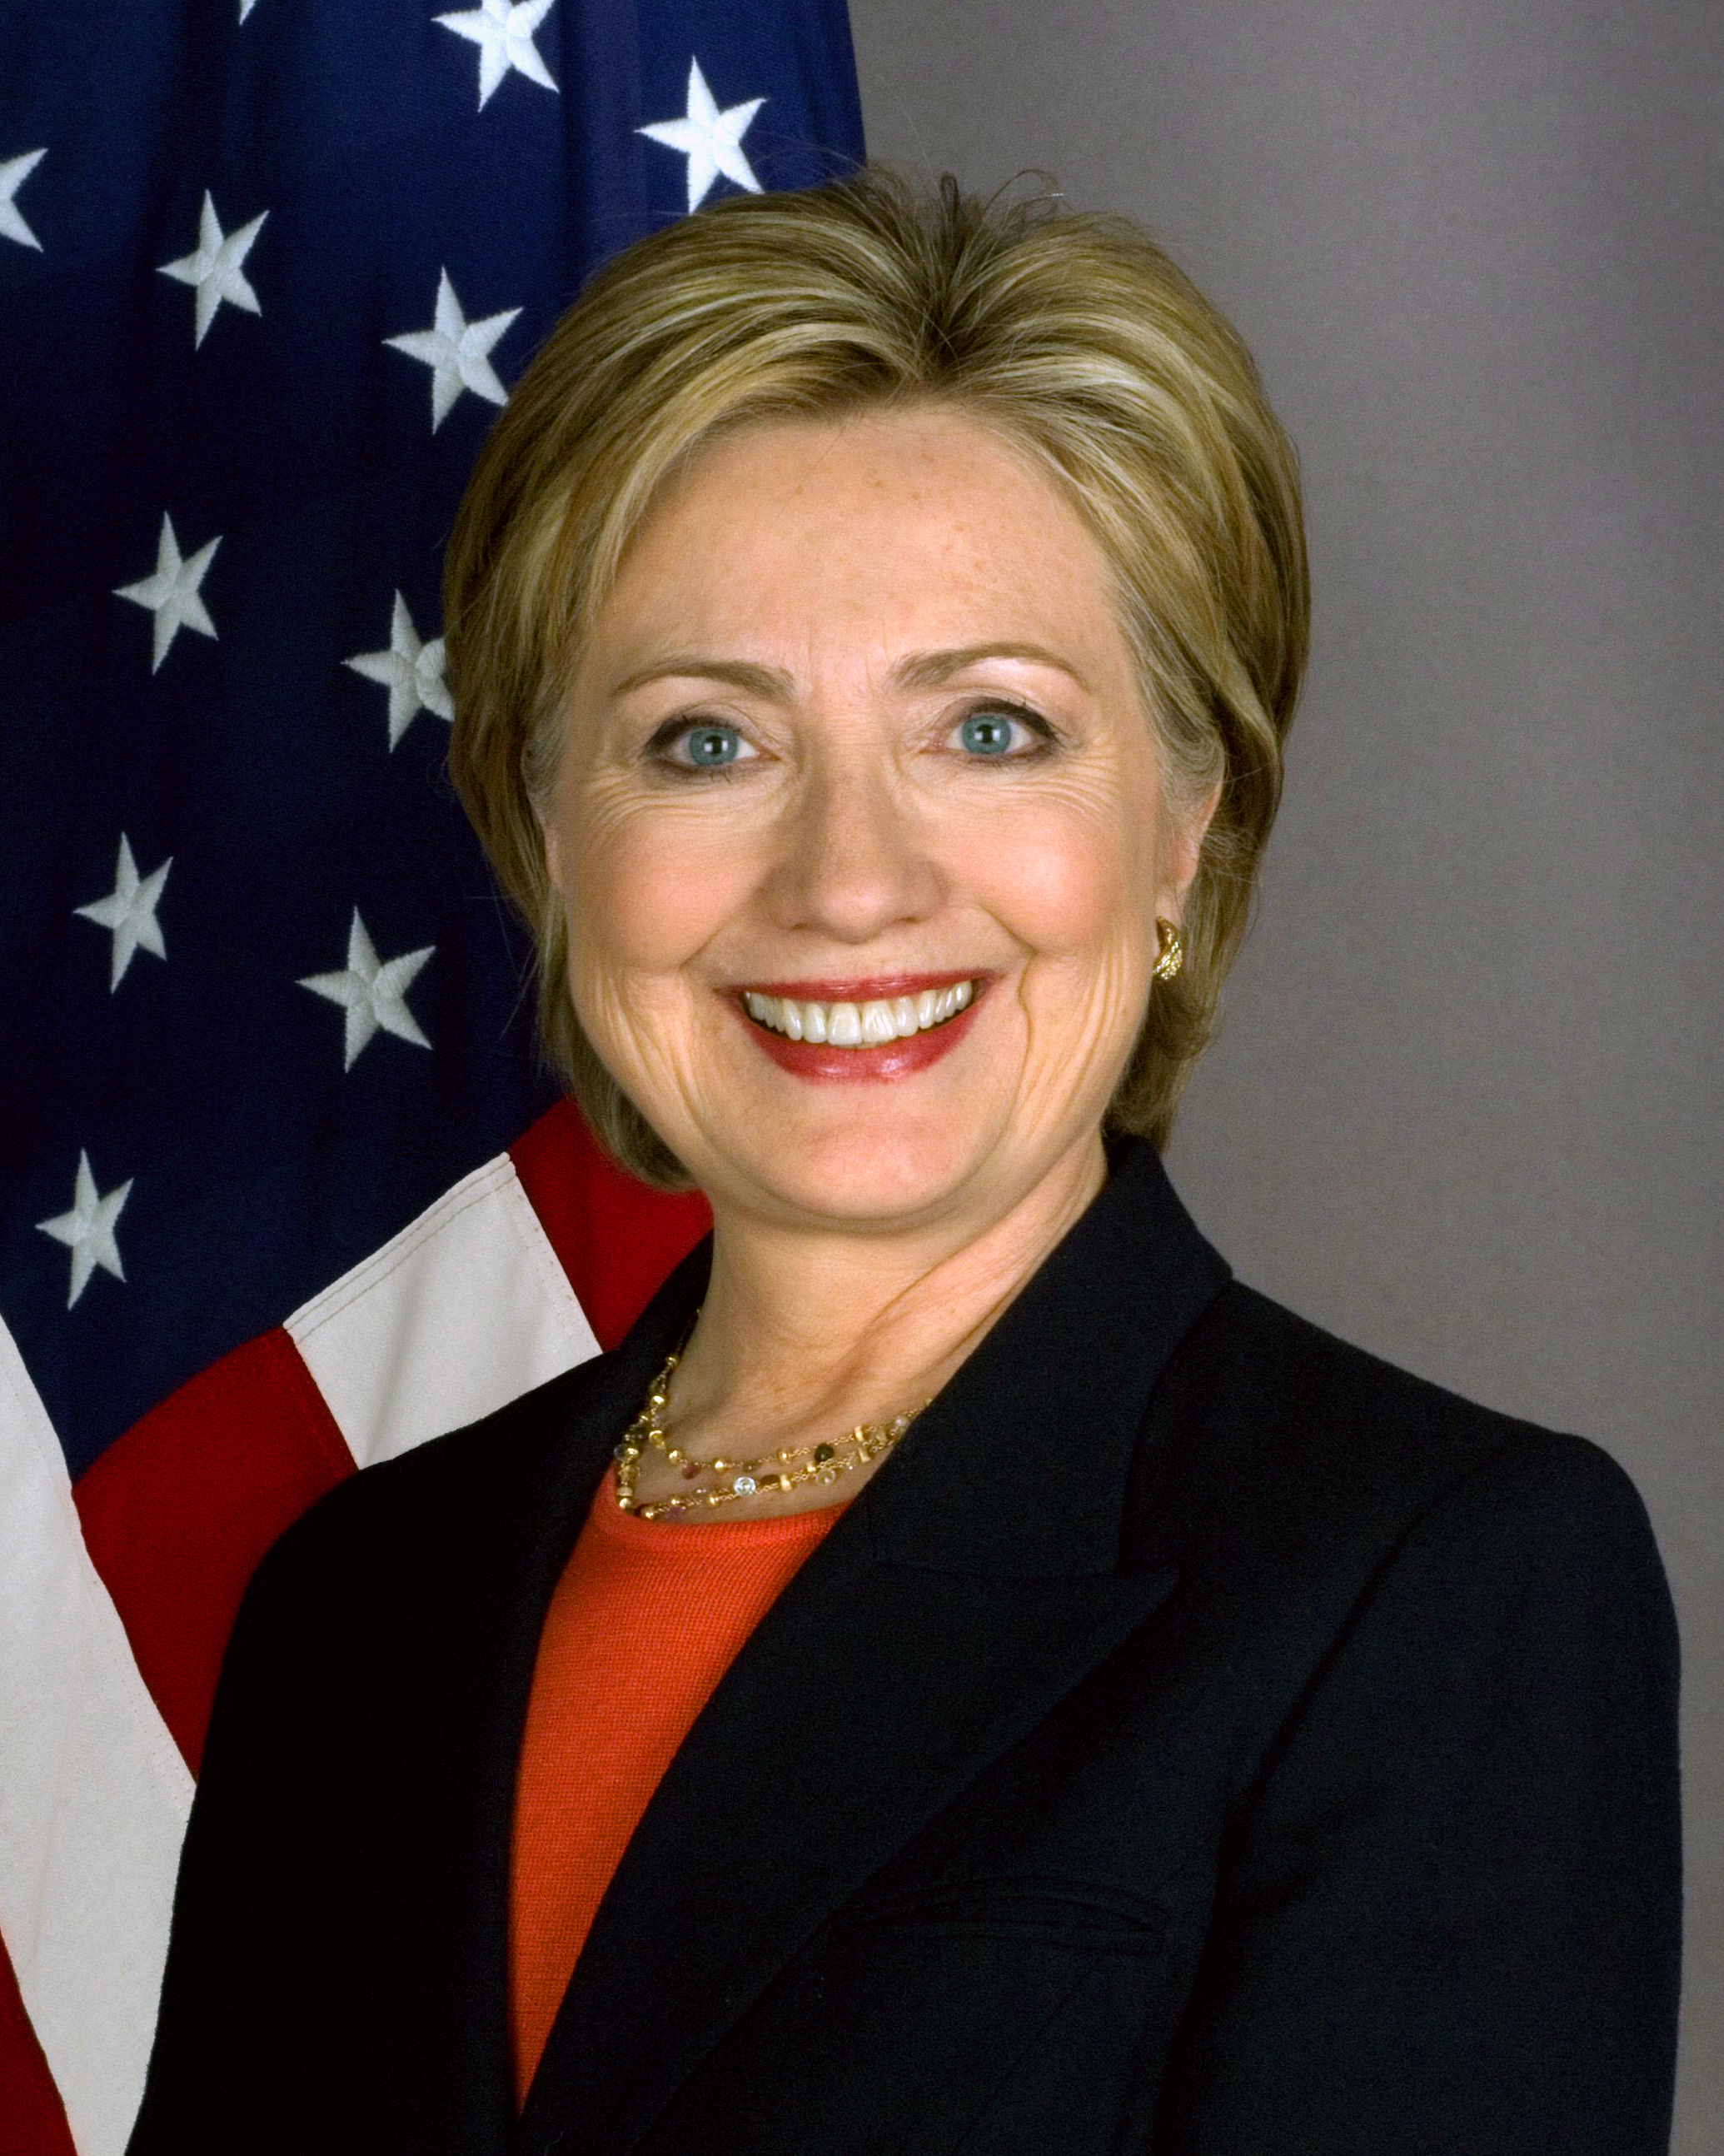 Hillary Clinton hopes to maintain her lead going into the election.